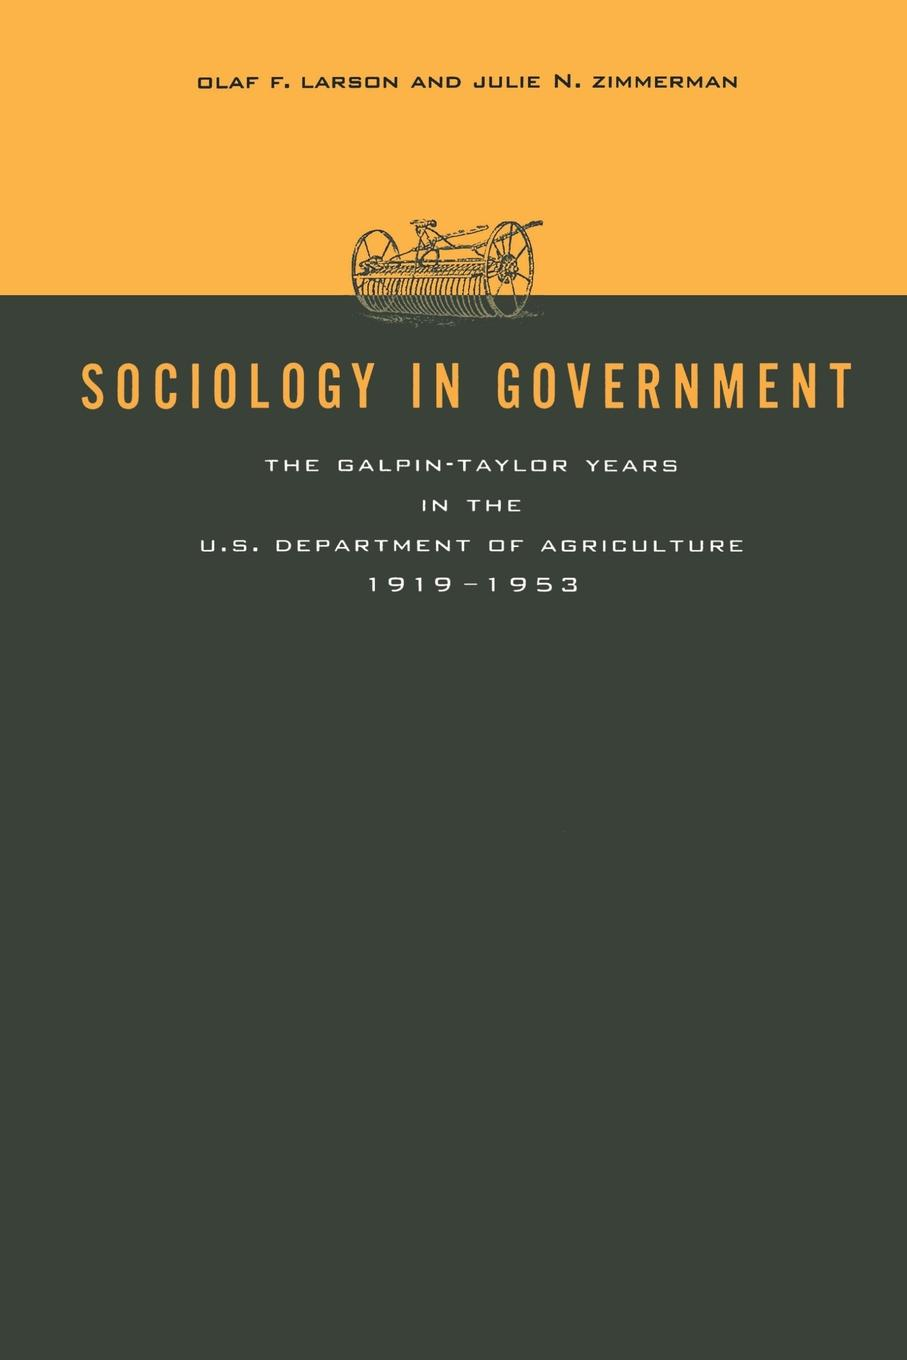 Фото - Olaf F. Larson, Julie N. Zimmerman, Edward O. Moe Sociology in Government. The Galpin-Taylor Years in the U.S. Department of Agriculture, 1919-1953 history of the 89th division u s a from its organization in 1917 through its operations in the world war the occupation of germany and until demobilization in 1919